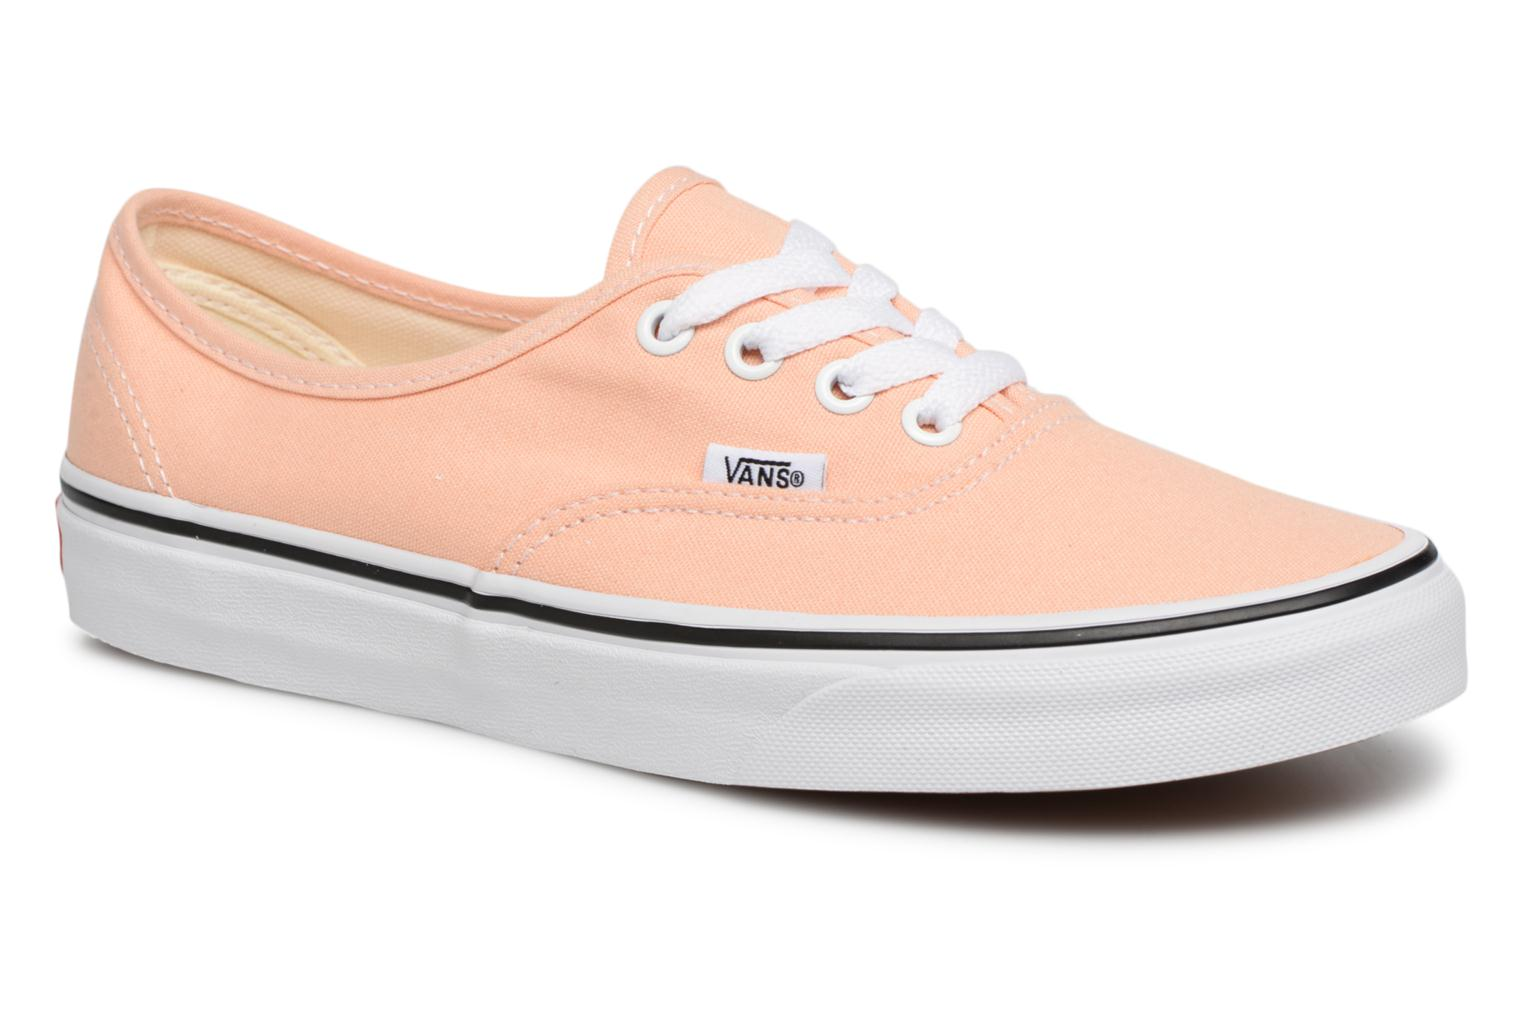 Vans Authentic w (Orange) - Baskets en Más cómodo Confortable et belle